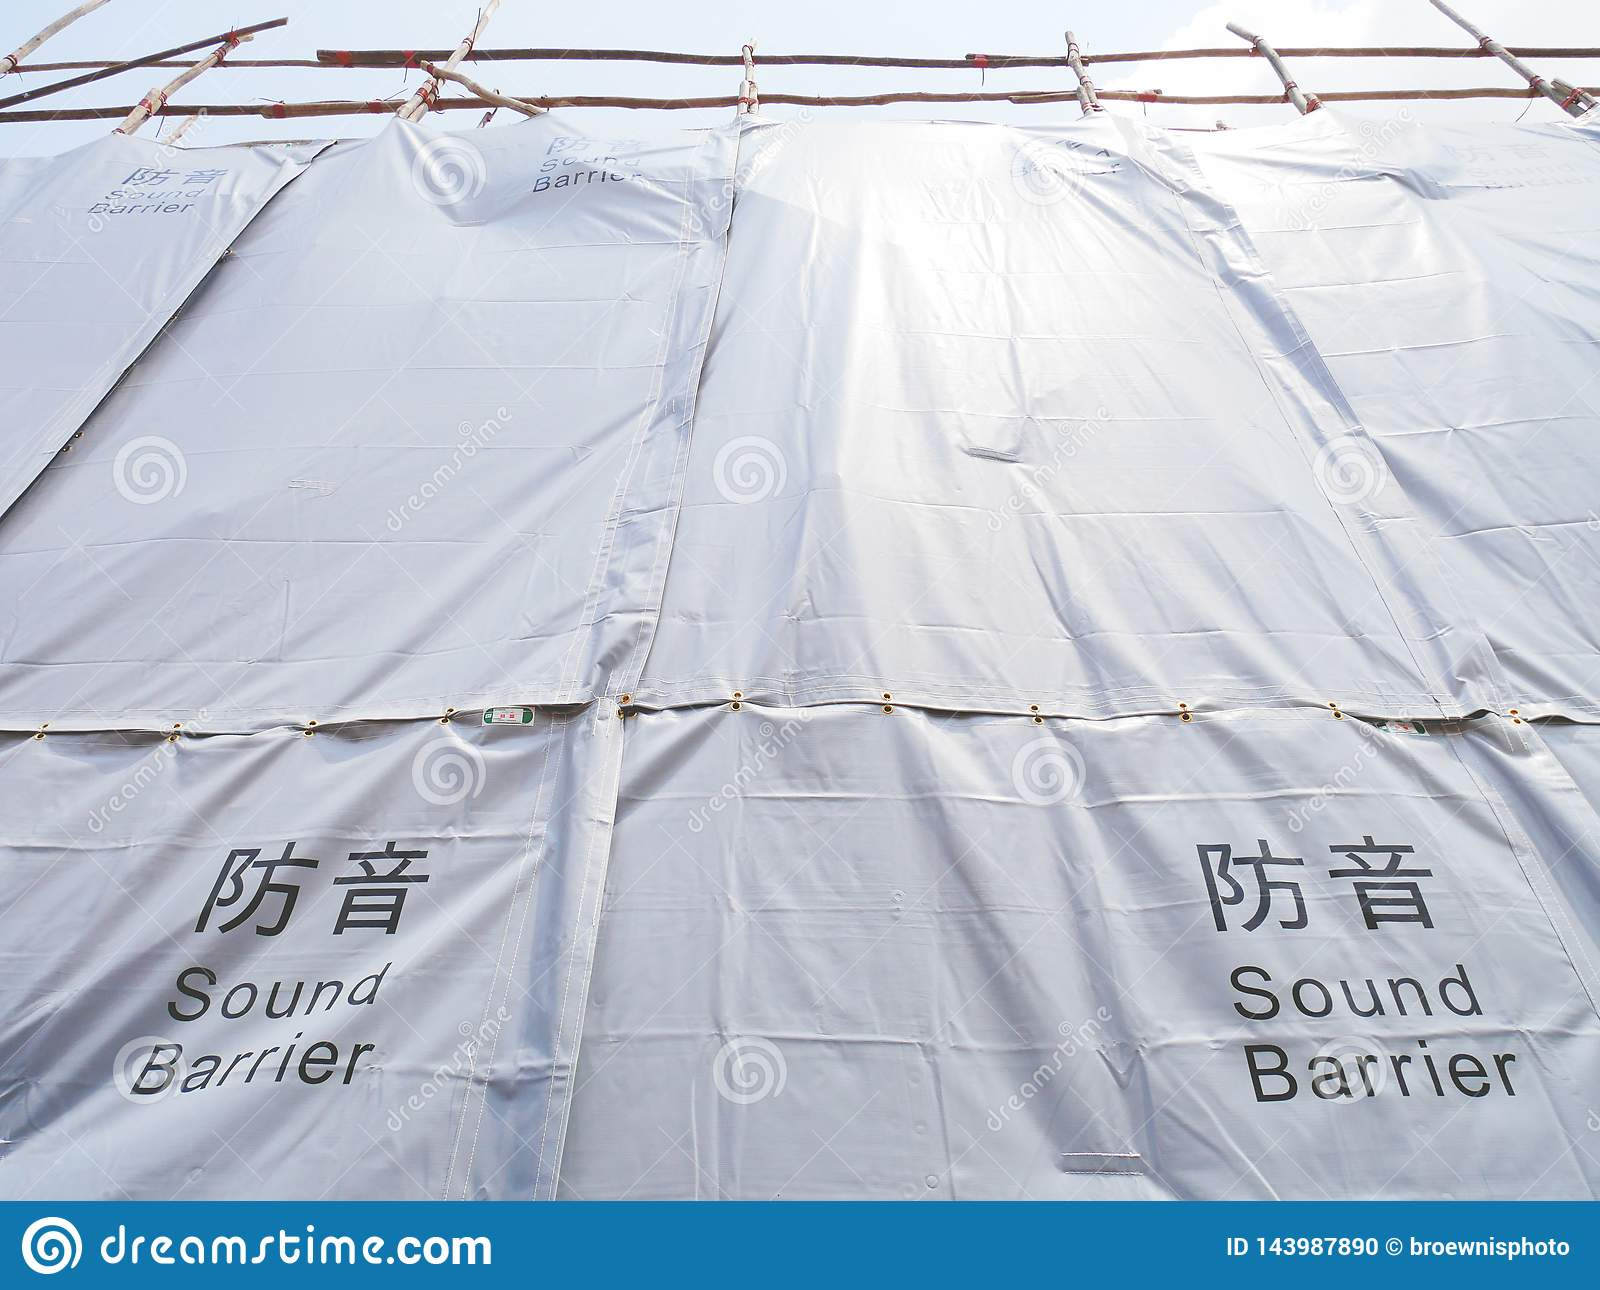 Sound Barrier Tarp Or Noise Barrier In Construction SItes